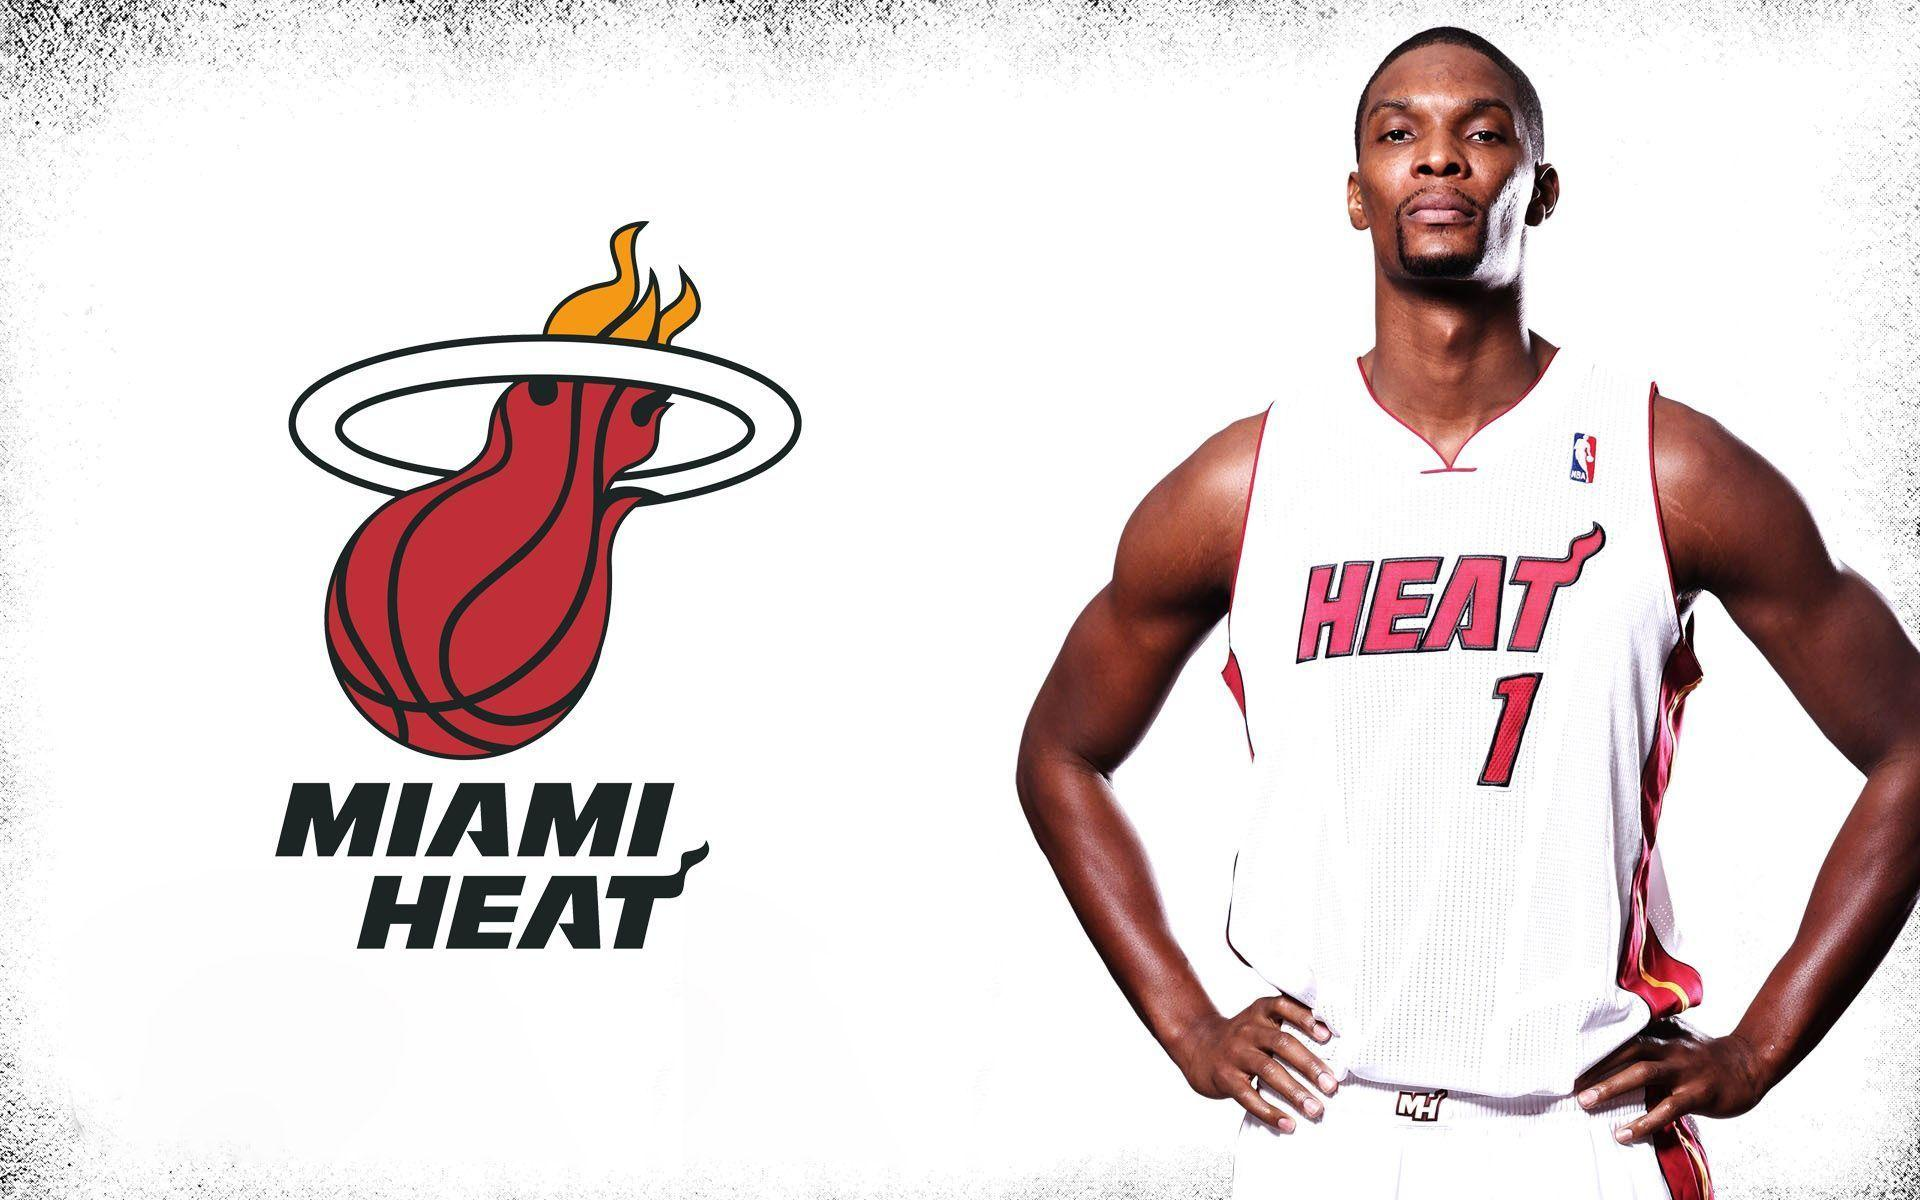 Chris Bosh 2014 Miami Heat Wallpapers Wide or HD